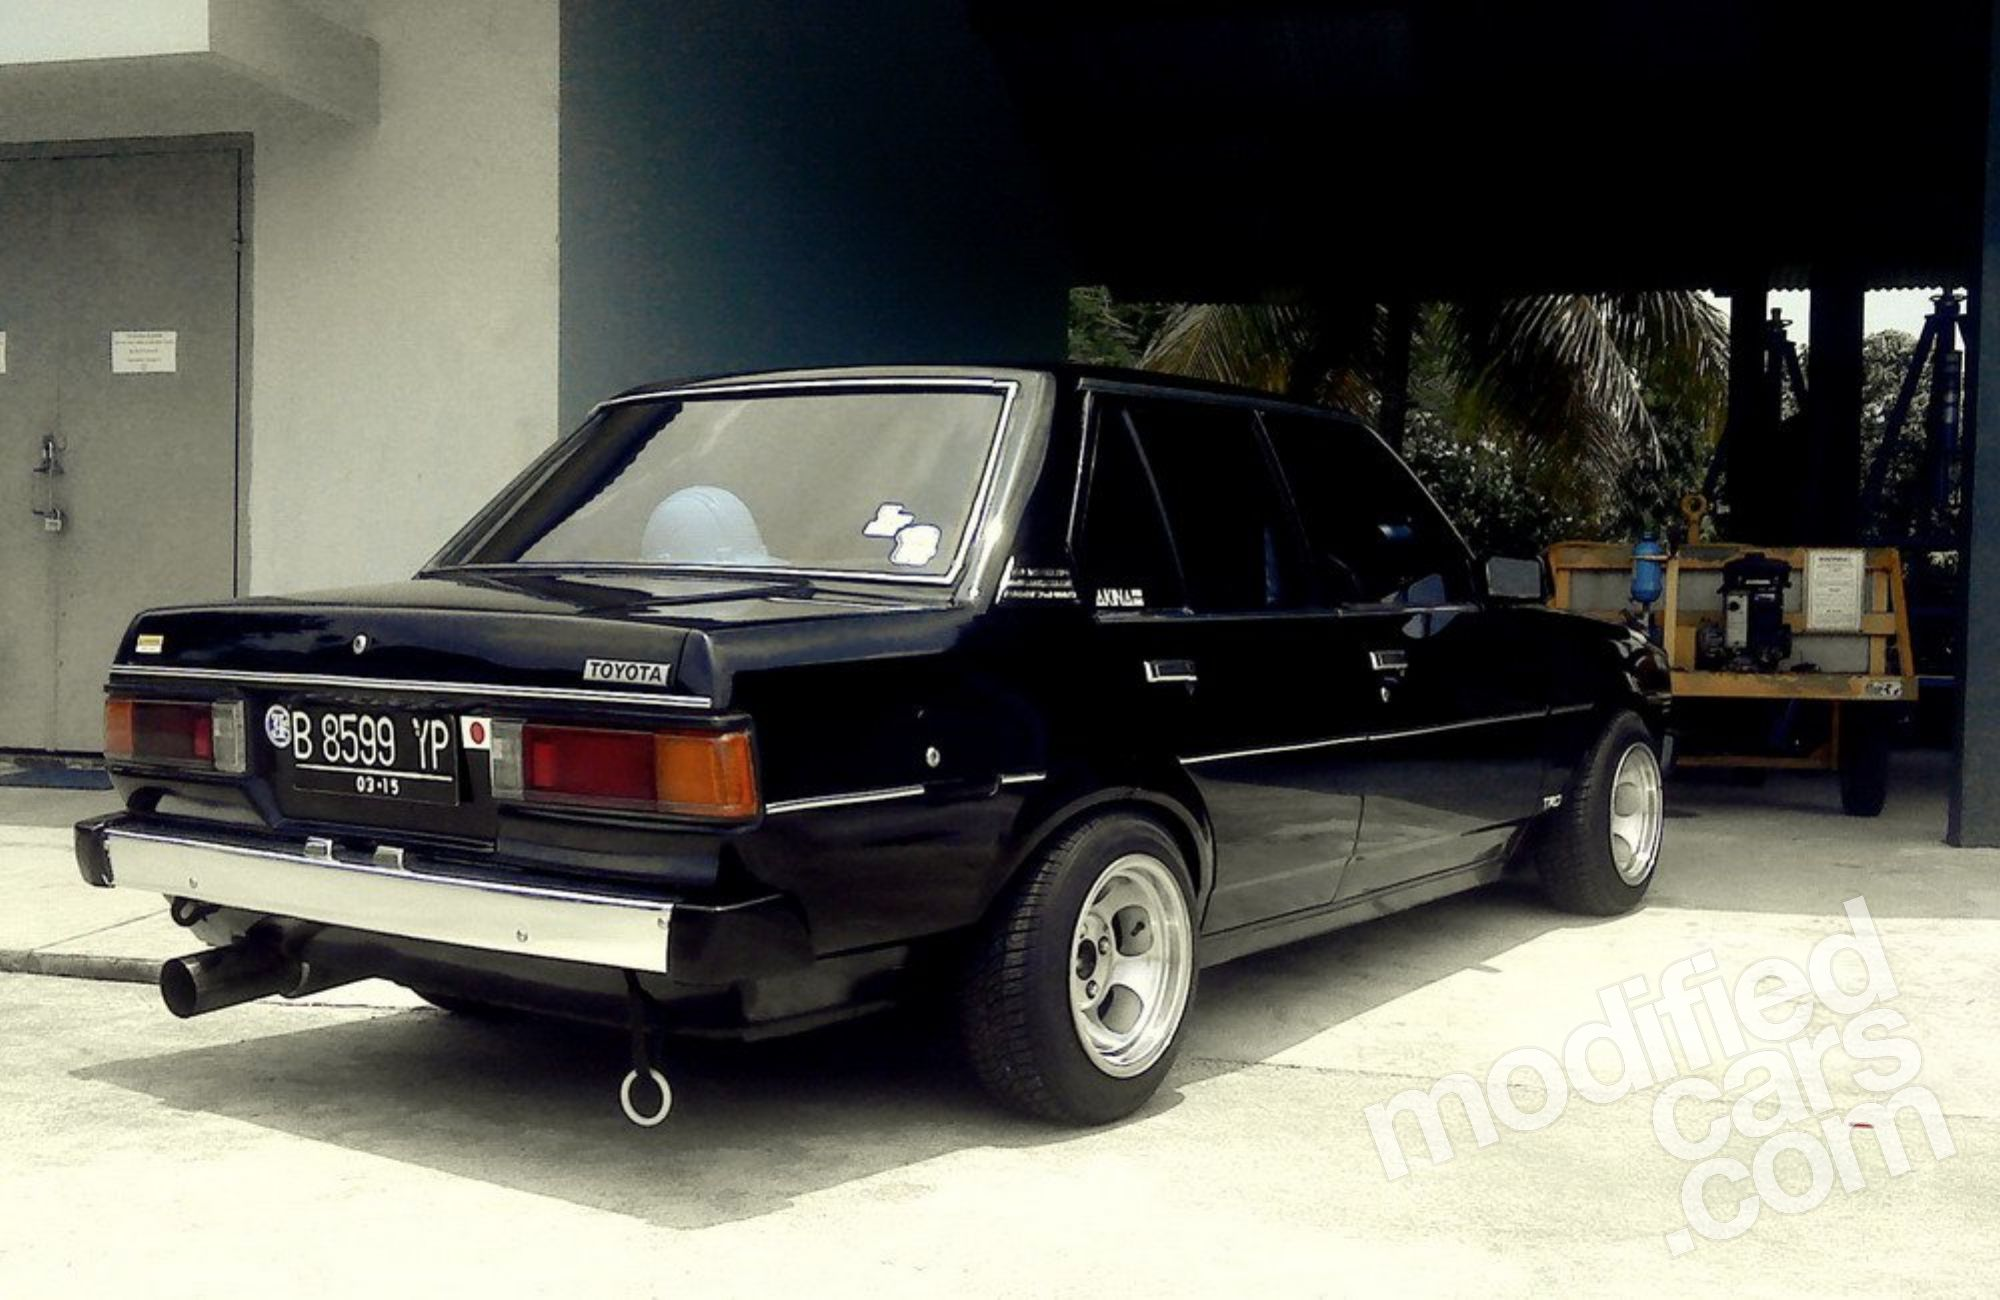 Press Photo Toyota Corolla Coupe Dx Ke70 From Netherlands Wanted Wiring Diagram For European 1980 Te72 Gt Car Electrical